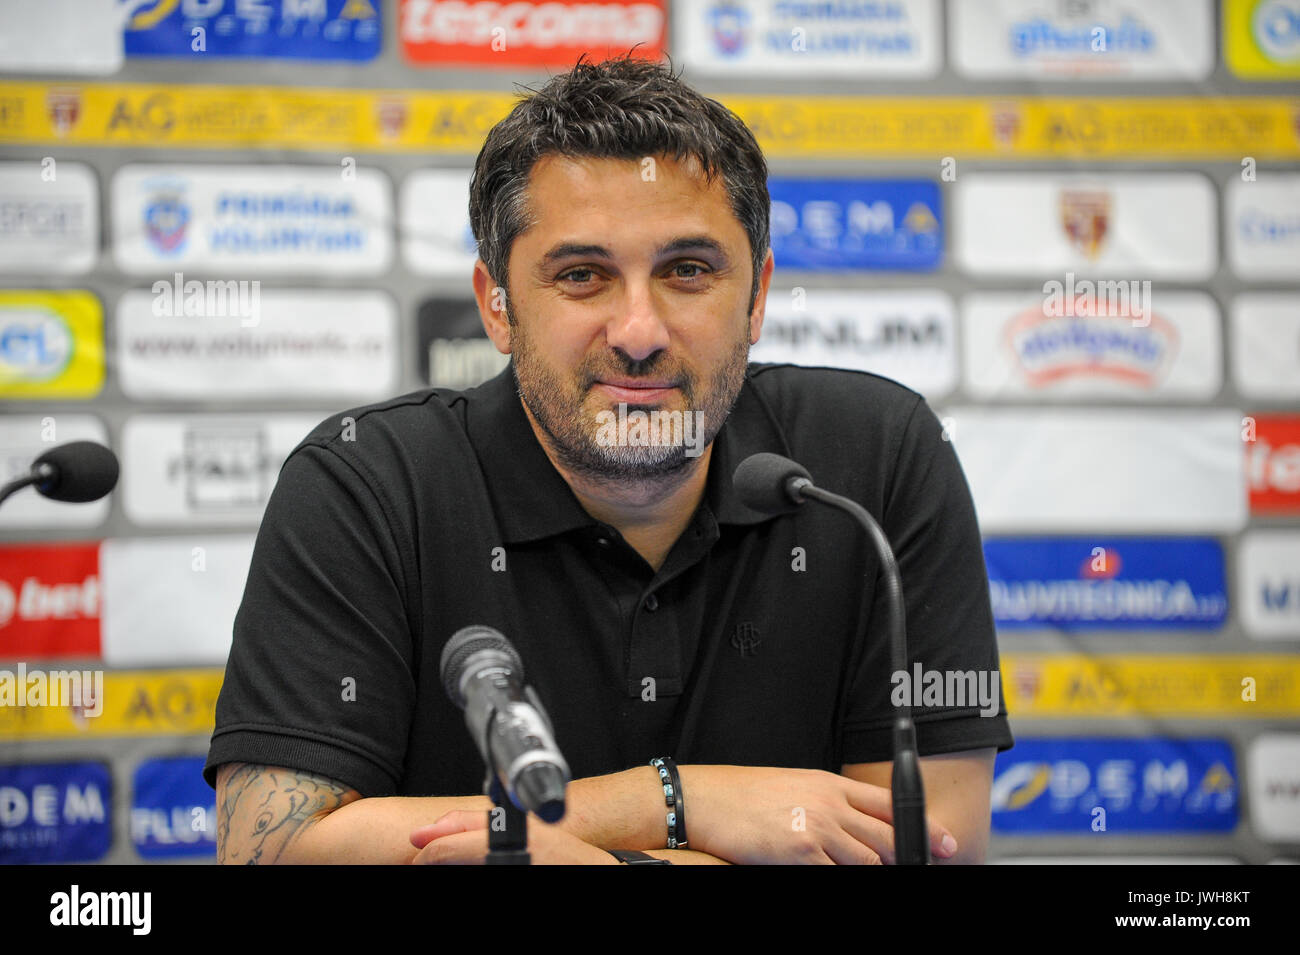 Claudiu Niculescu, the head coach of FC Voluntari - Liga 1 (Romanian Football League One) game between FC Voluntari - Stock Image